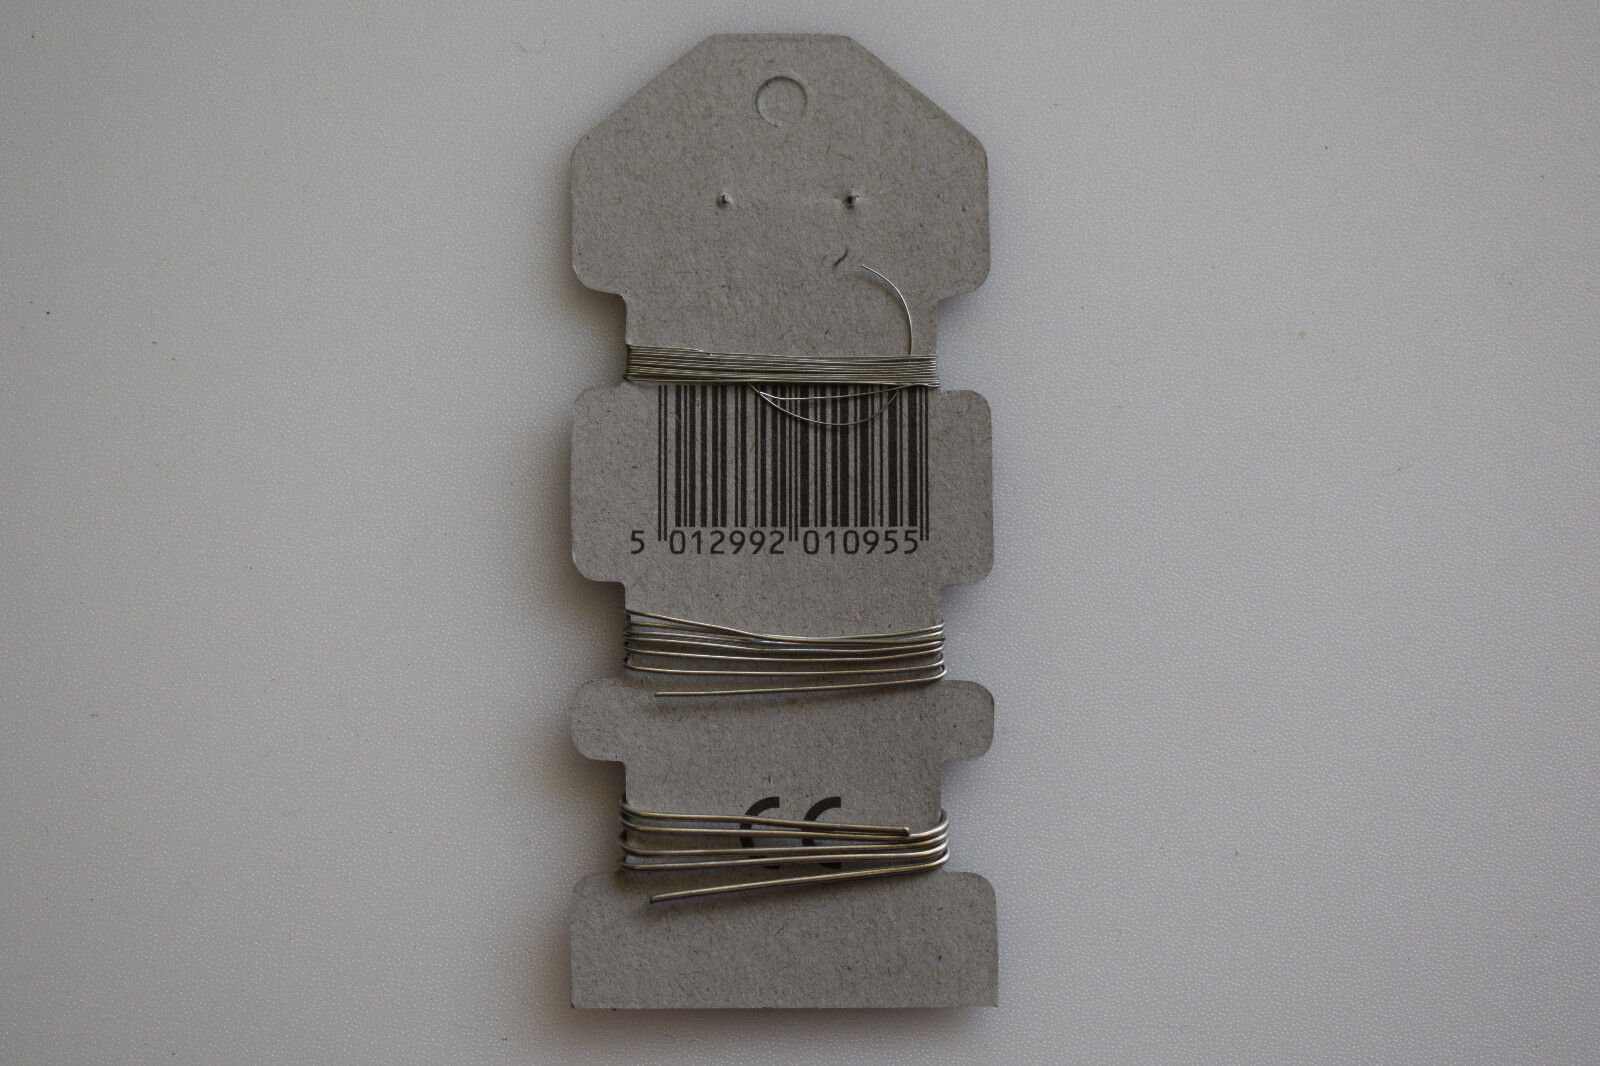 Lyvia Card Of 5 Amp 15 30 Fuse Wire For Consumer Box See More